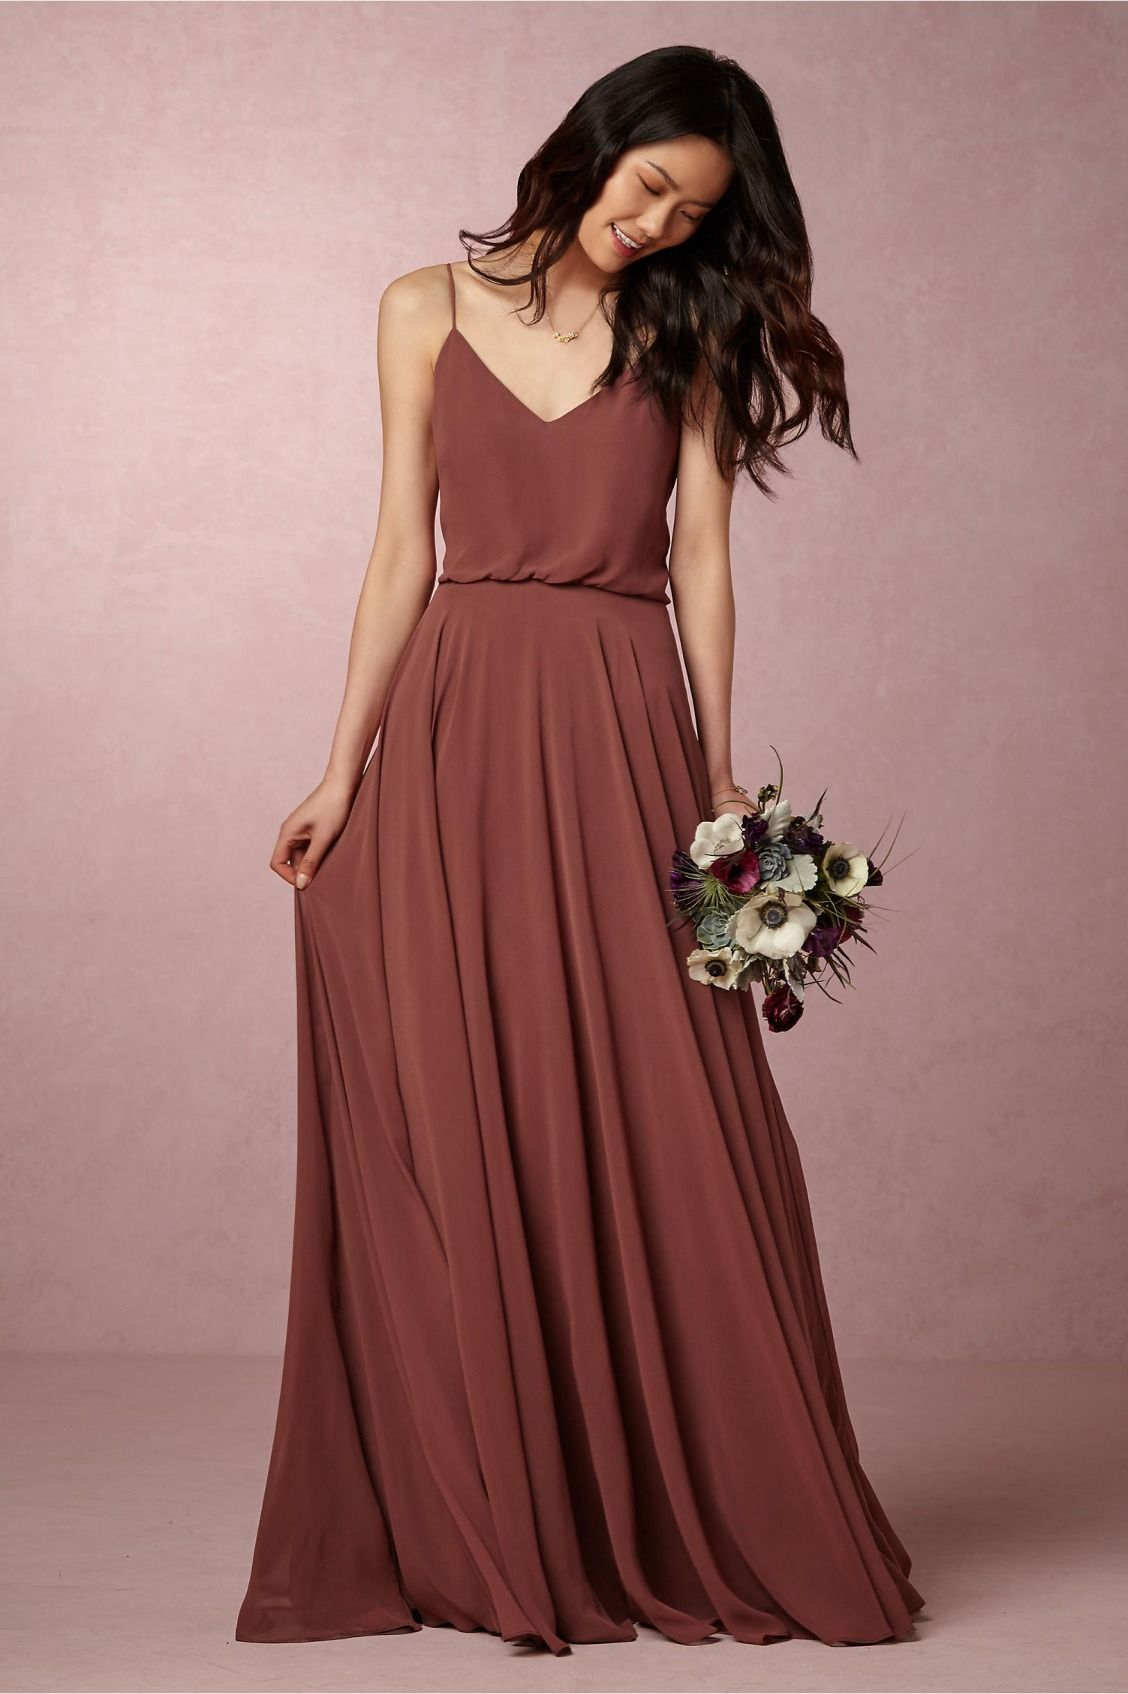 f3ea844772d airy chiffon bridesmaid dress